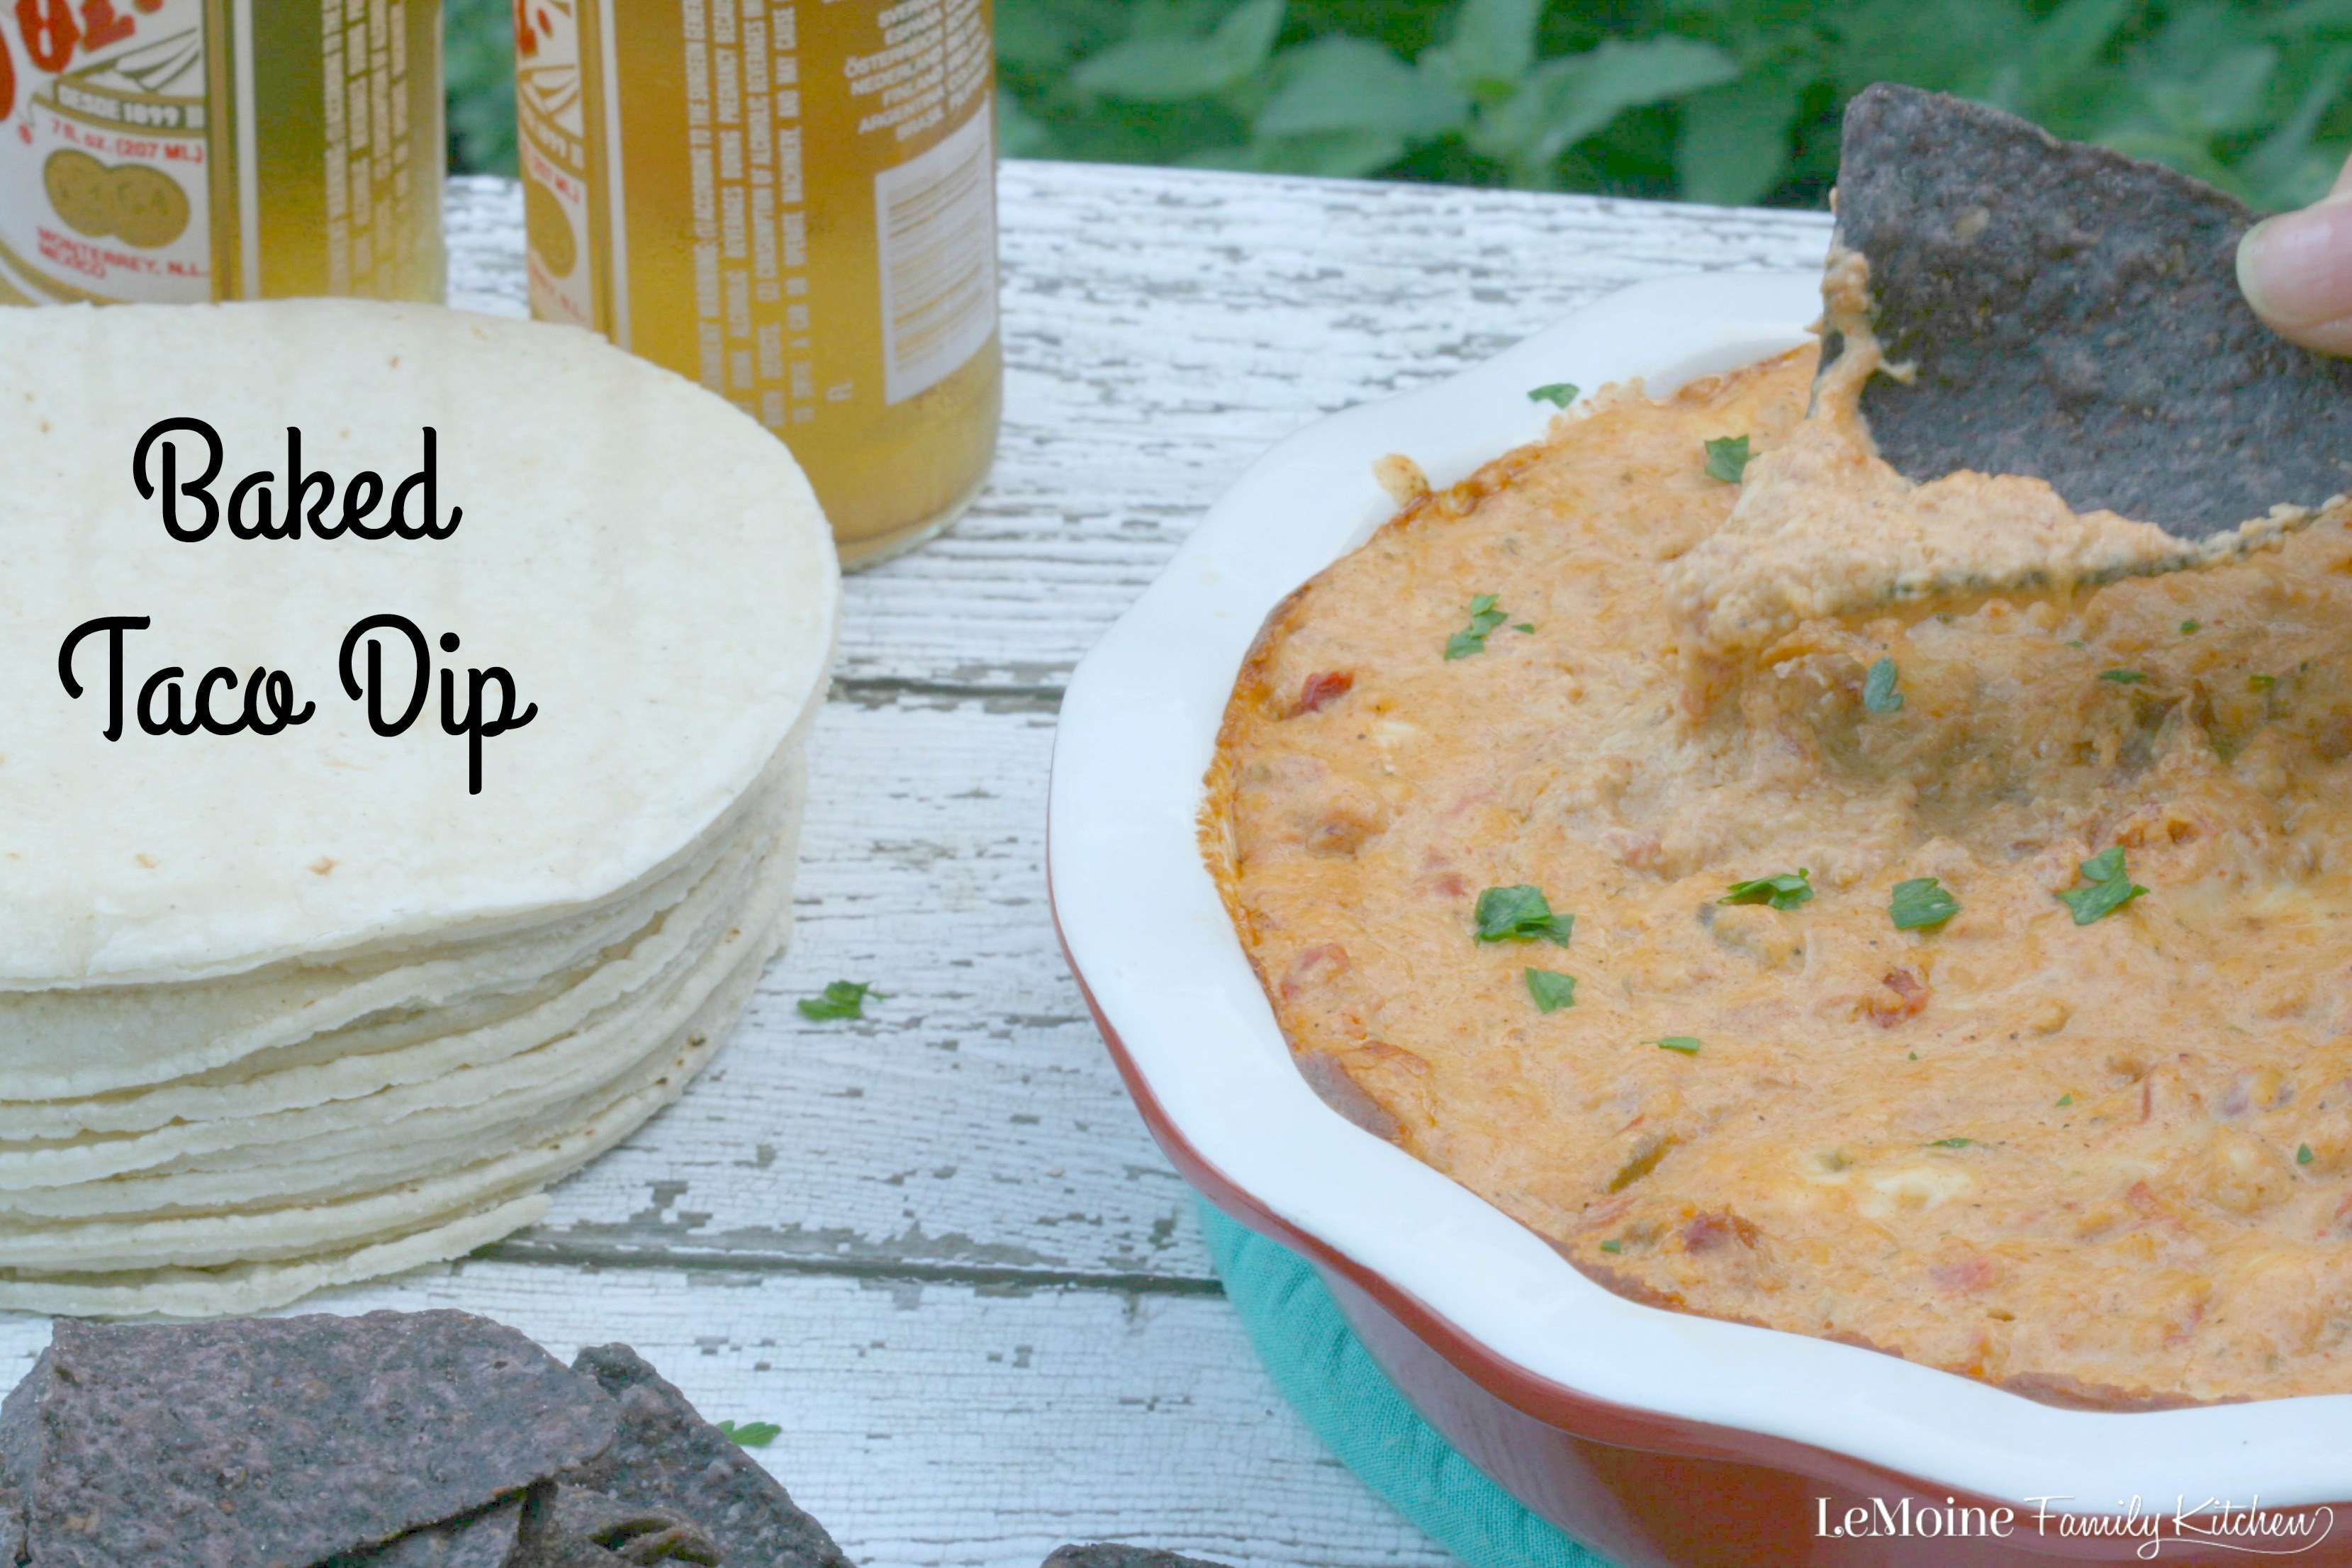 Baked Taco Dip | LeMoine Family Kitchen ... Perfectly cheesy, spicy and creamy. This dip is the perfect party food, especially for a football game with friends.